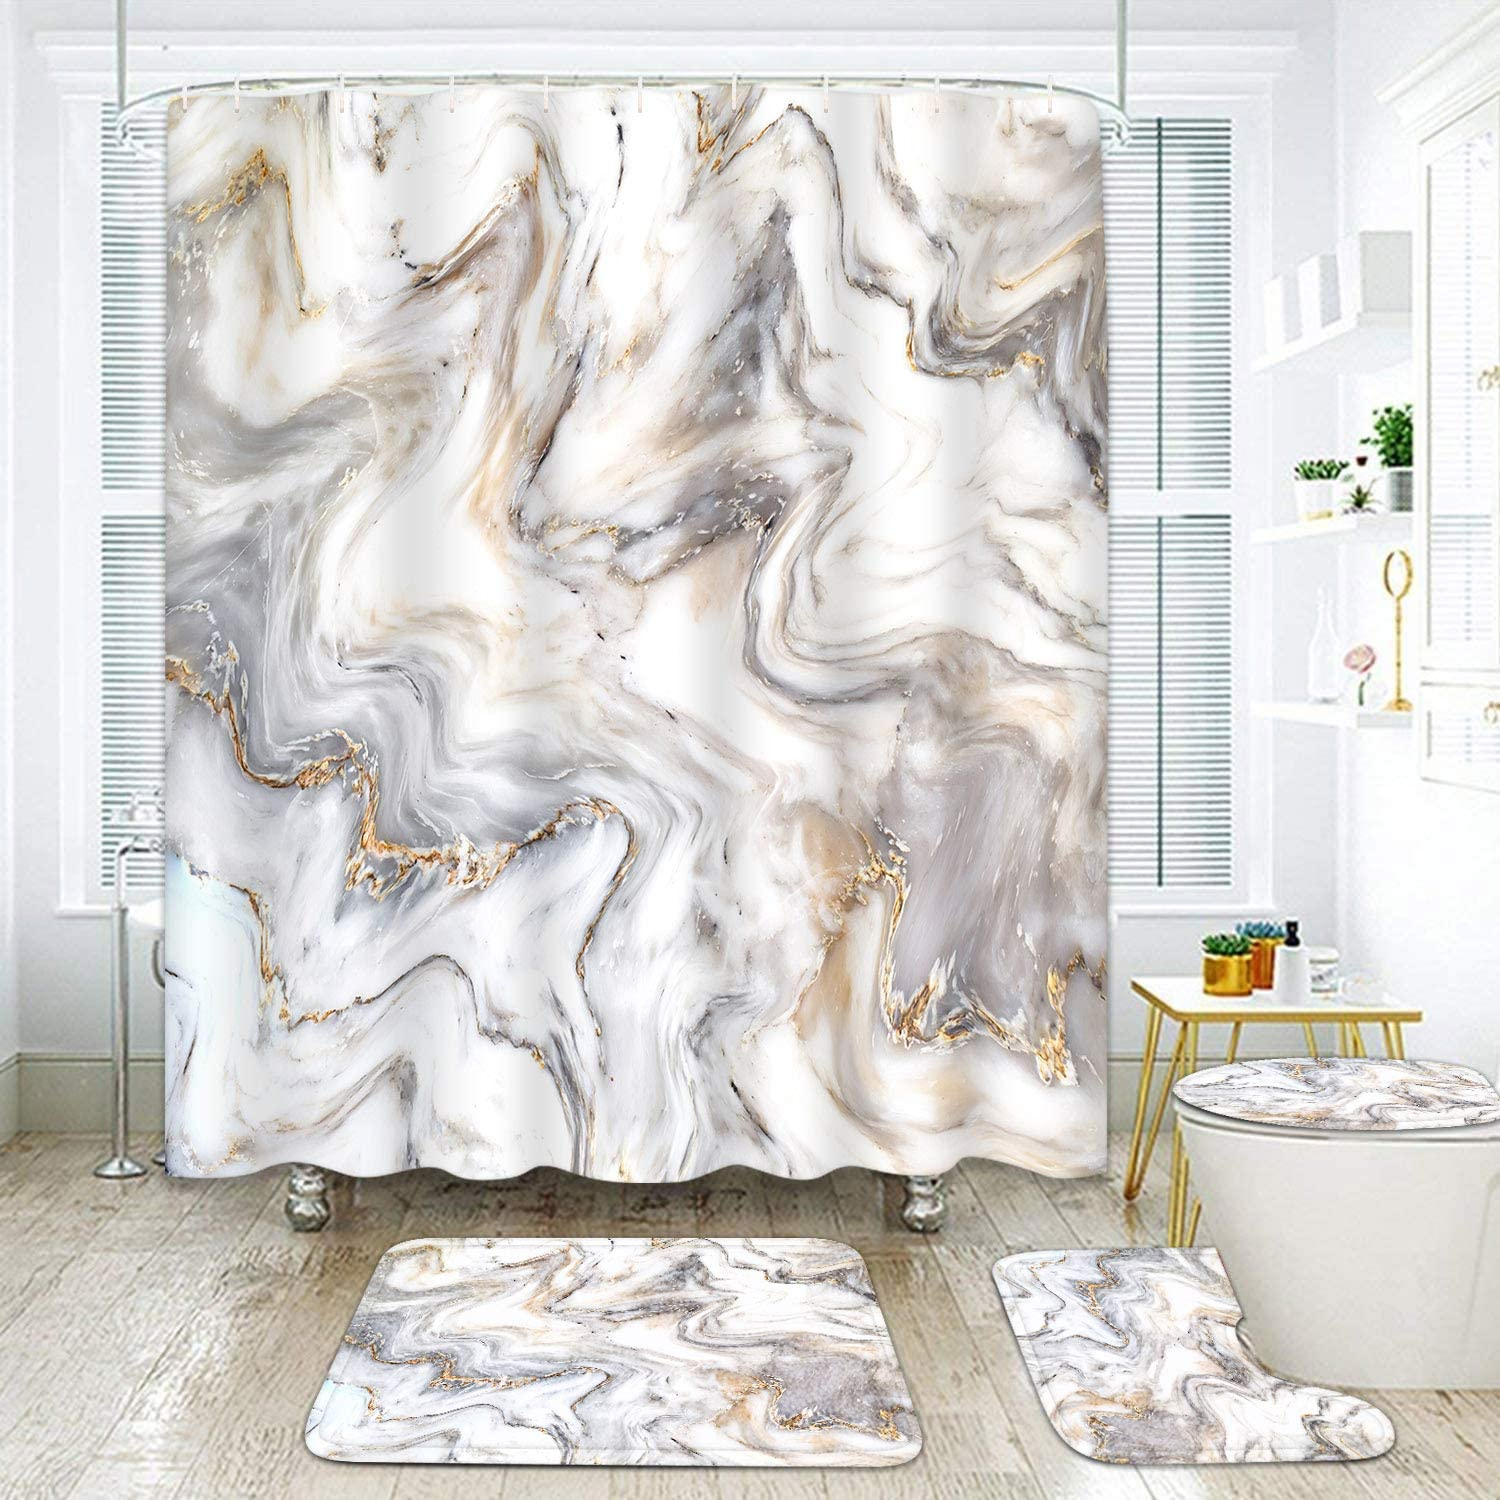 ArtSocket 4 Piece Marble Shower Curtain Sets Natural Marble Texture White Gray Wave Gold Swirl with Non-Slip Rug, Toilet Lid Cover, Bath Mat and 12 Hooks 72x72inch